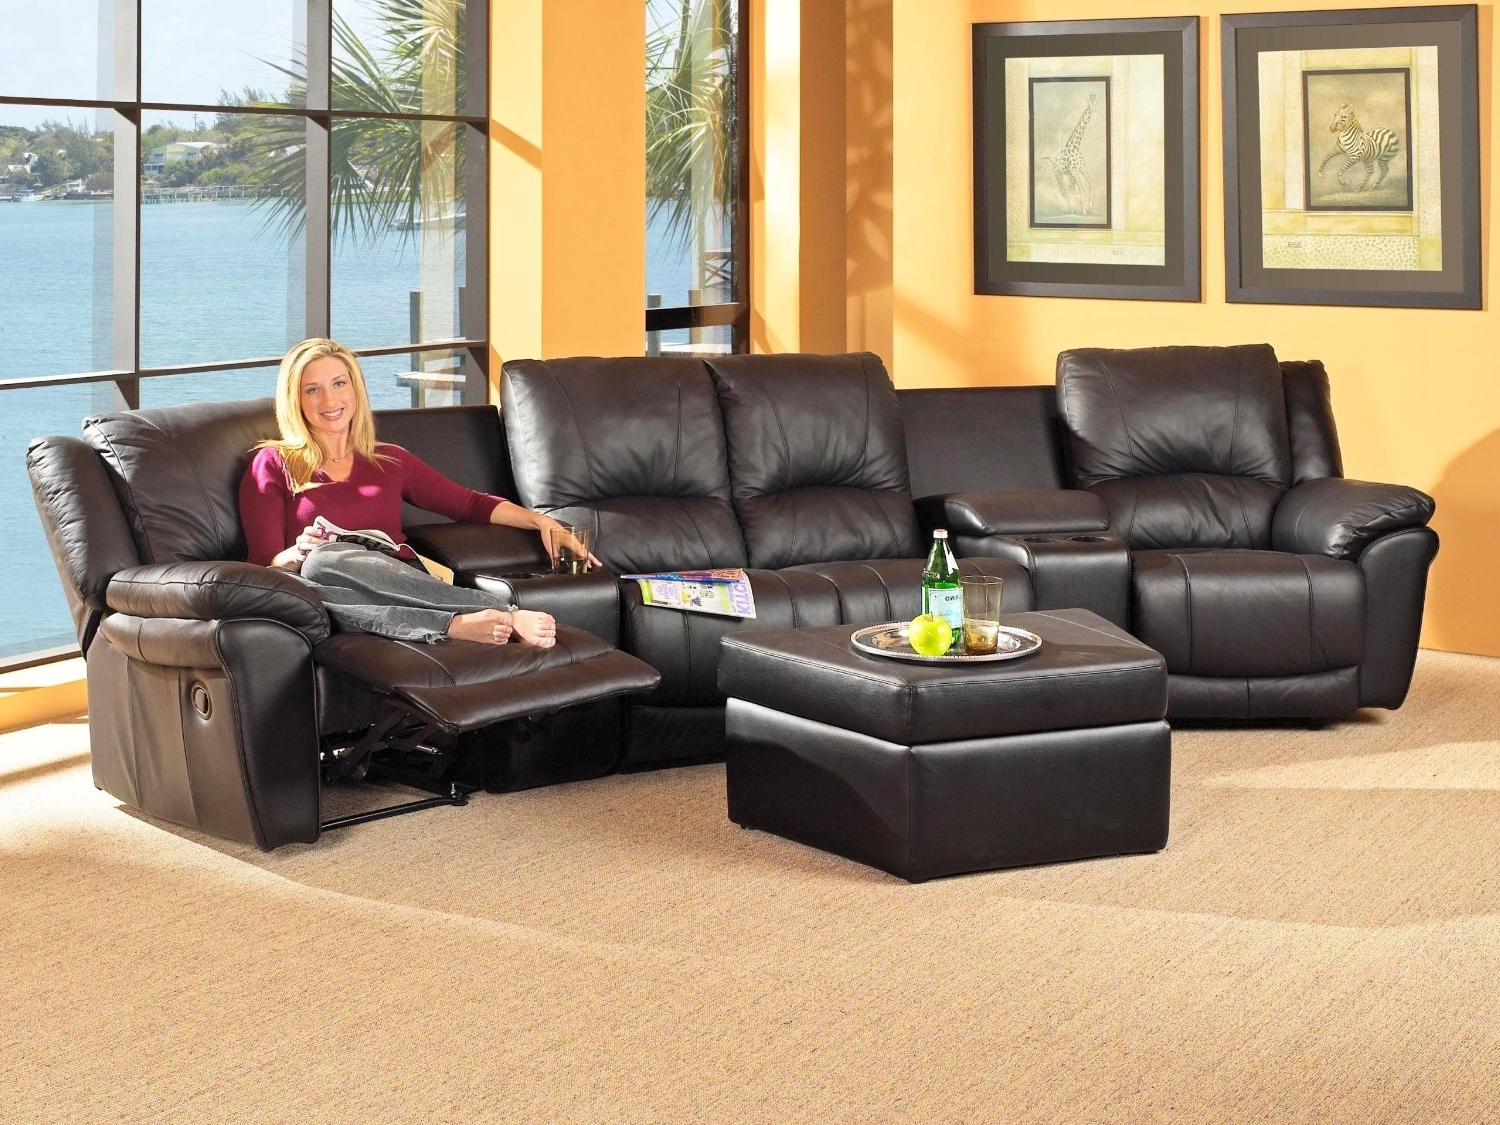 Well Liked Sectional Sofas For Small Spaces With Recliners In Small Space Sectional Sofa – Decofurnish (View 12 of 15)